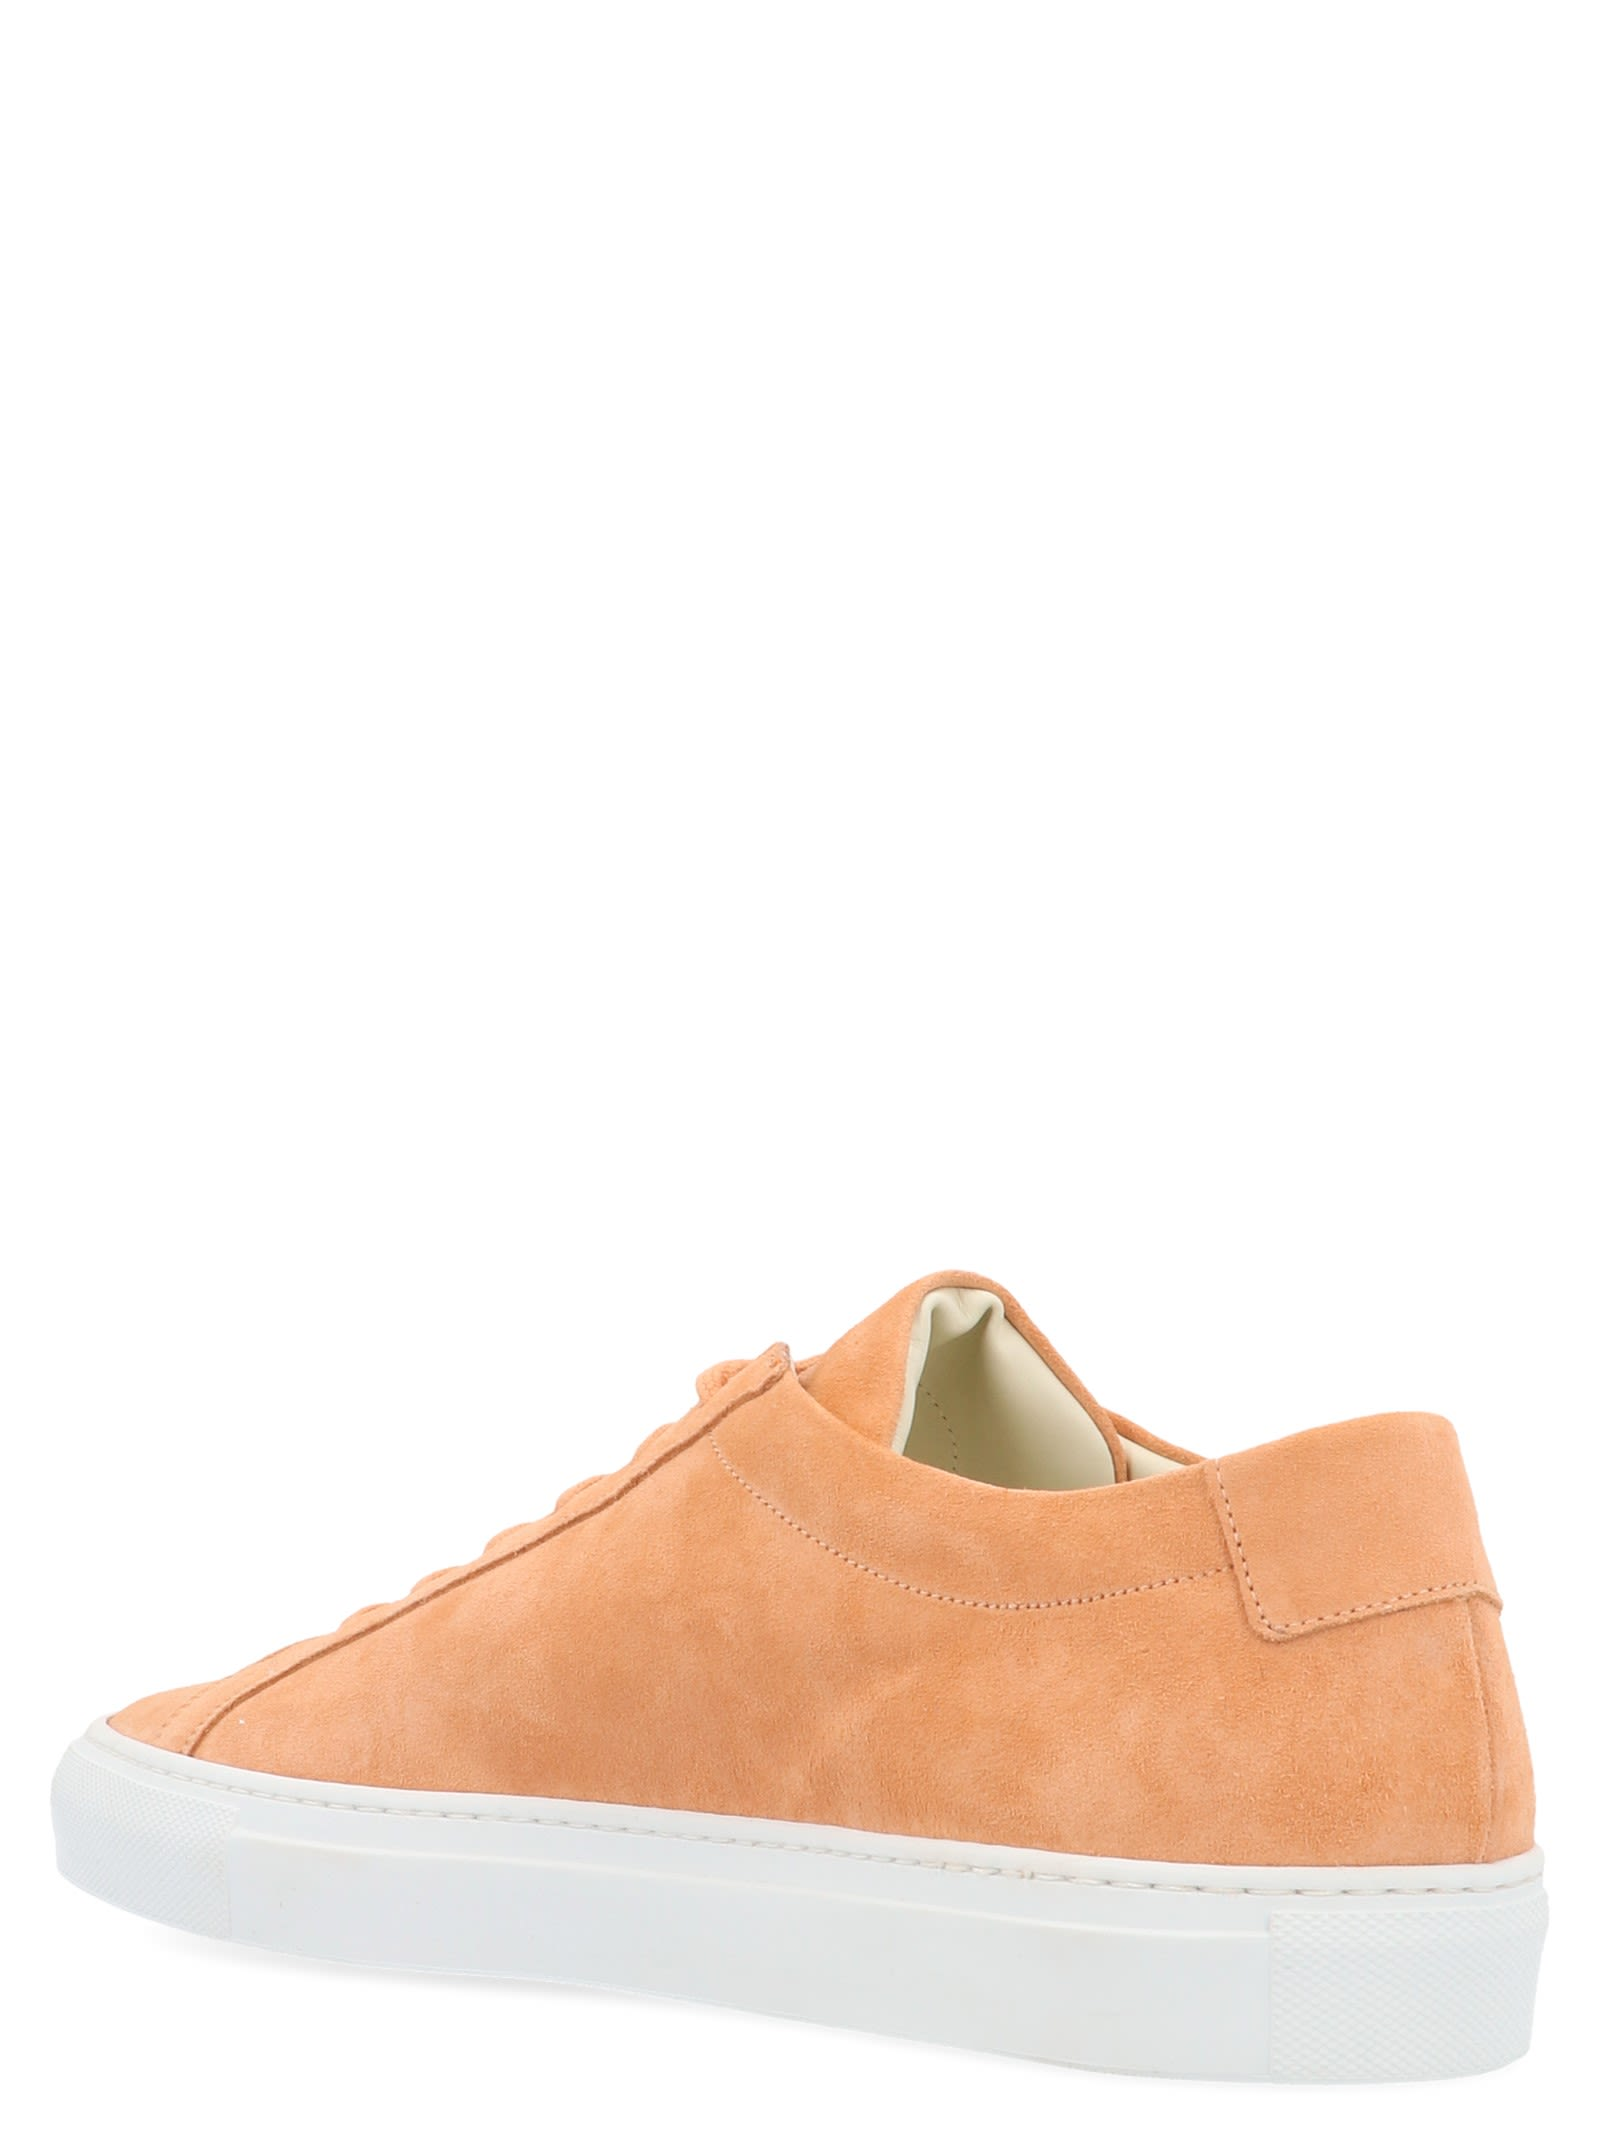 97ac0db74e6b5 Common Projects Common Projects  achilles  Shoes - Orange - 10821033 ...